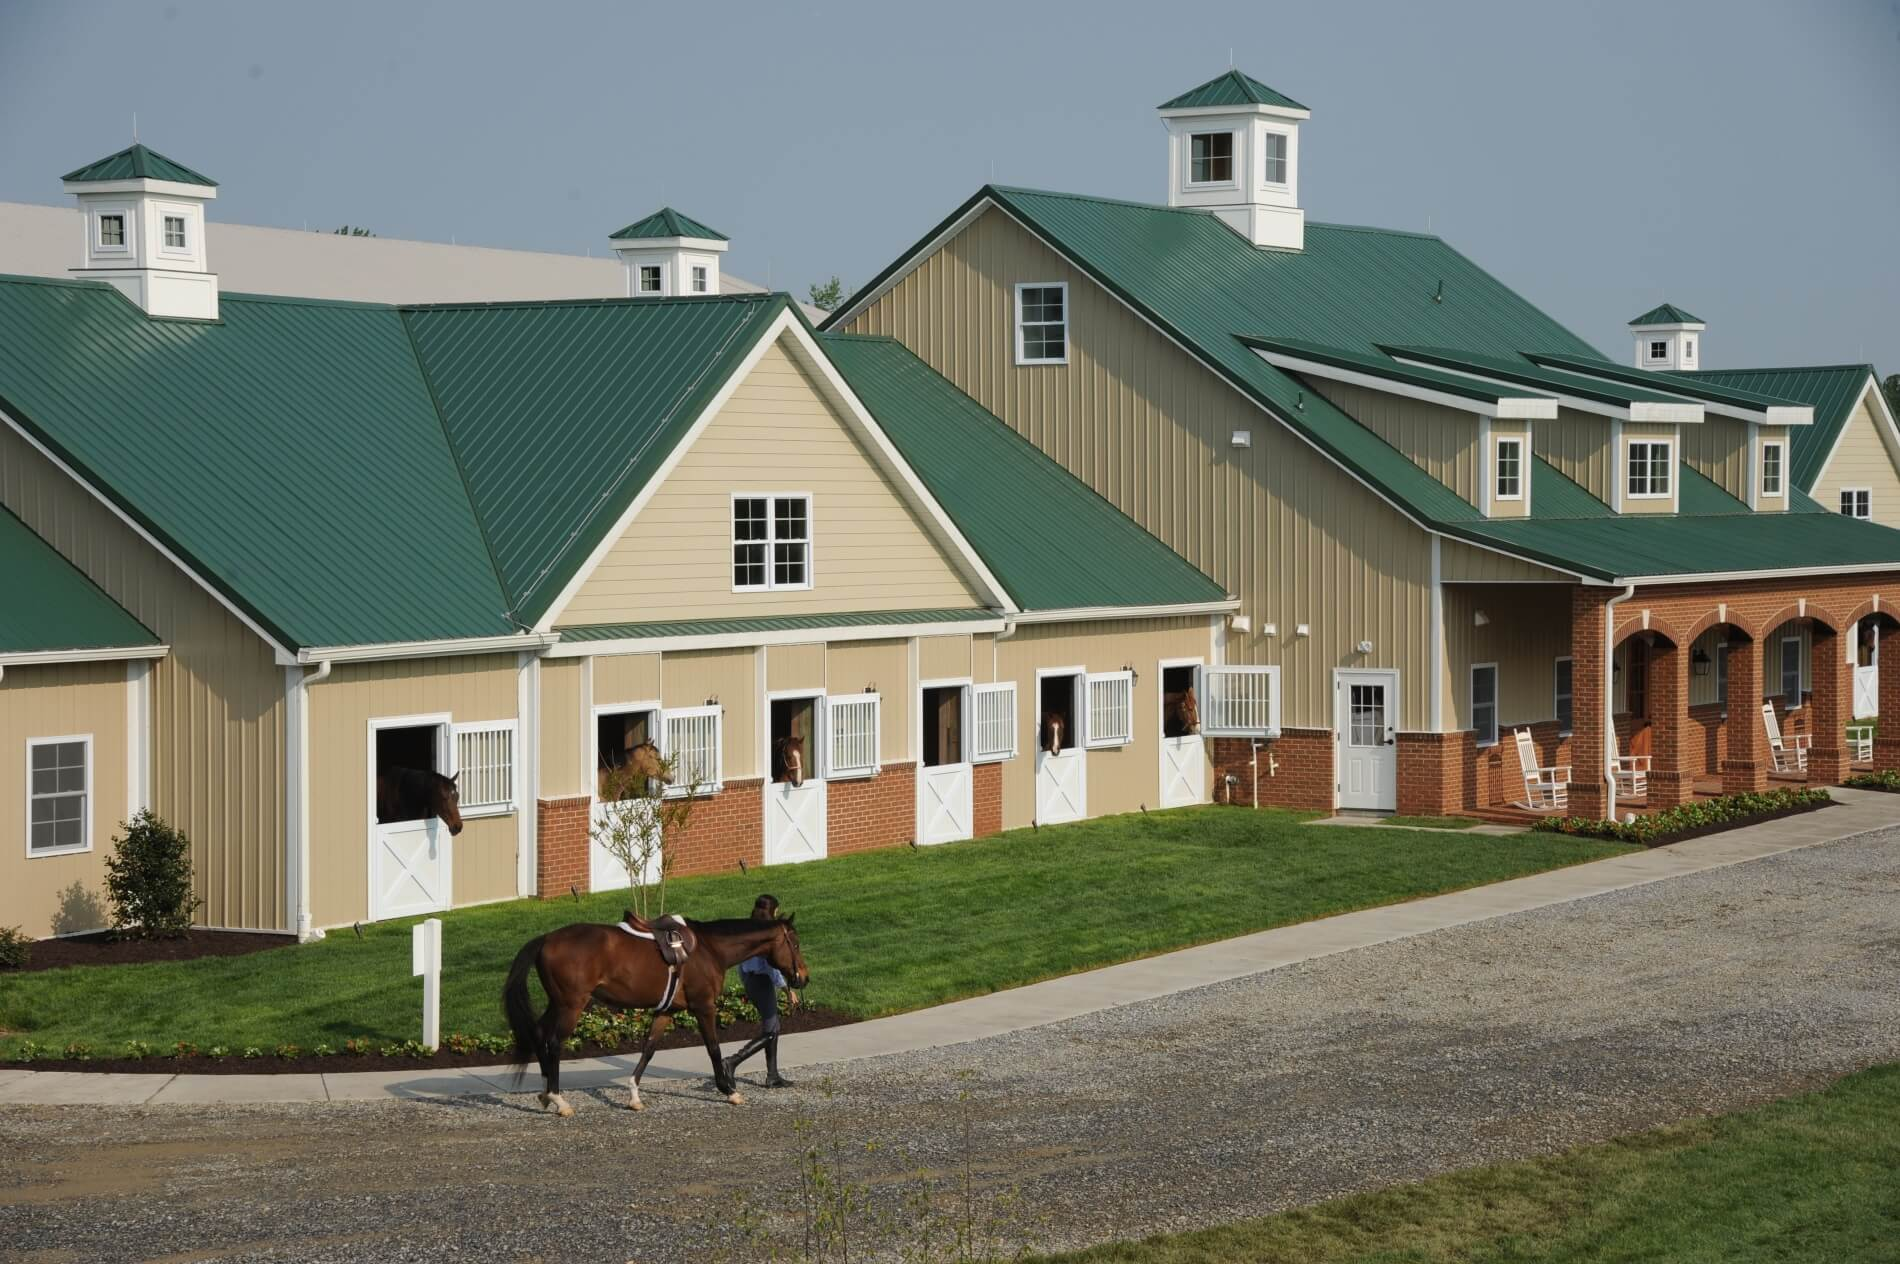 Max-Rib panels specified and installed as roofing and most of the walls at award winning equestrian community facility